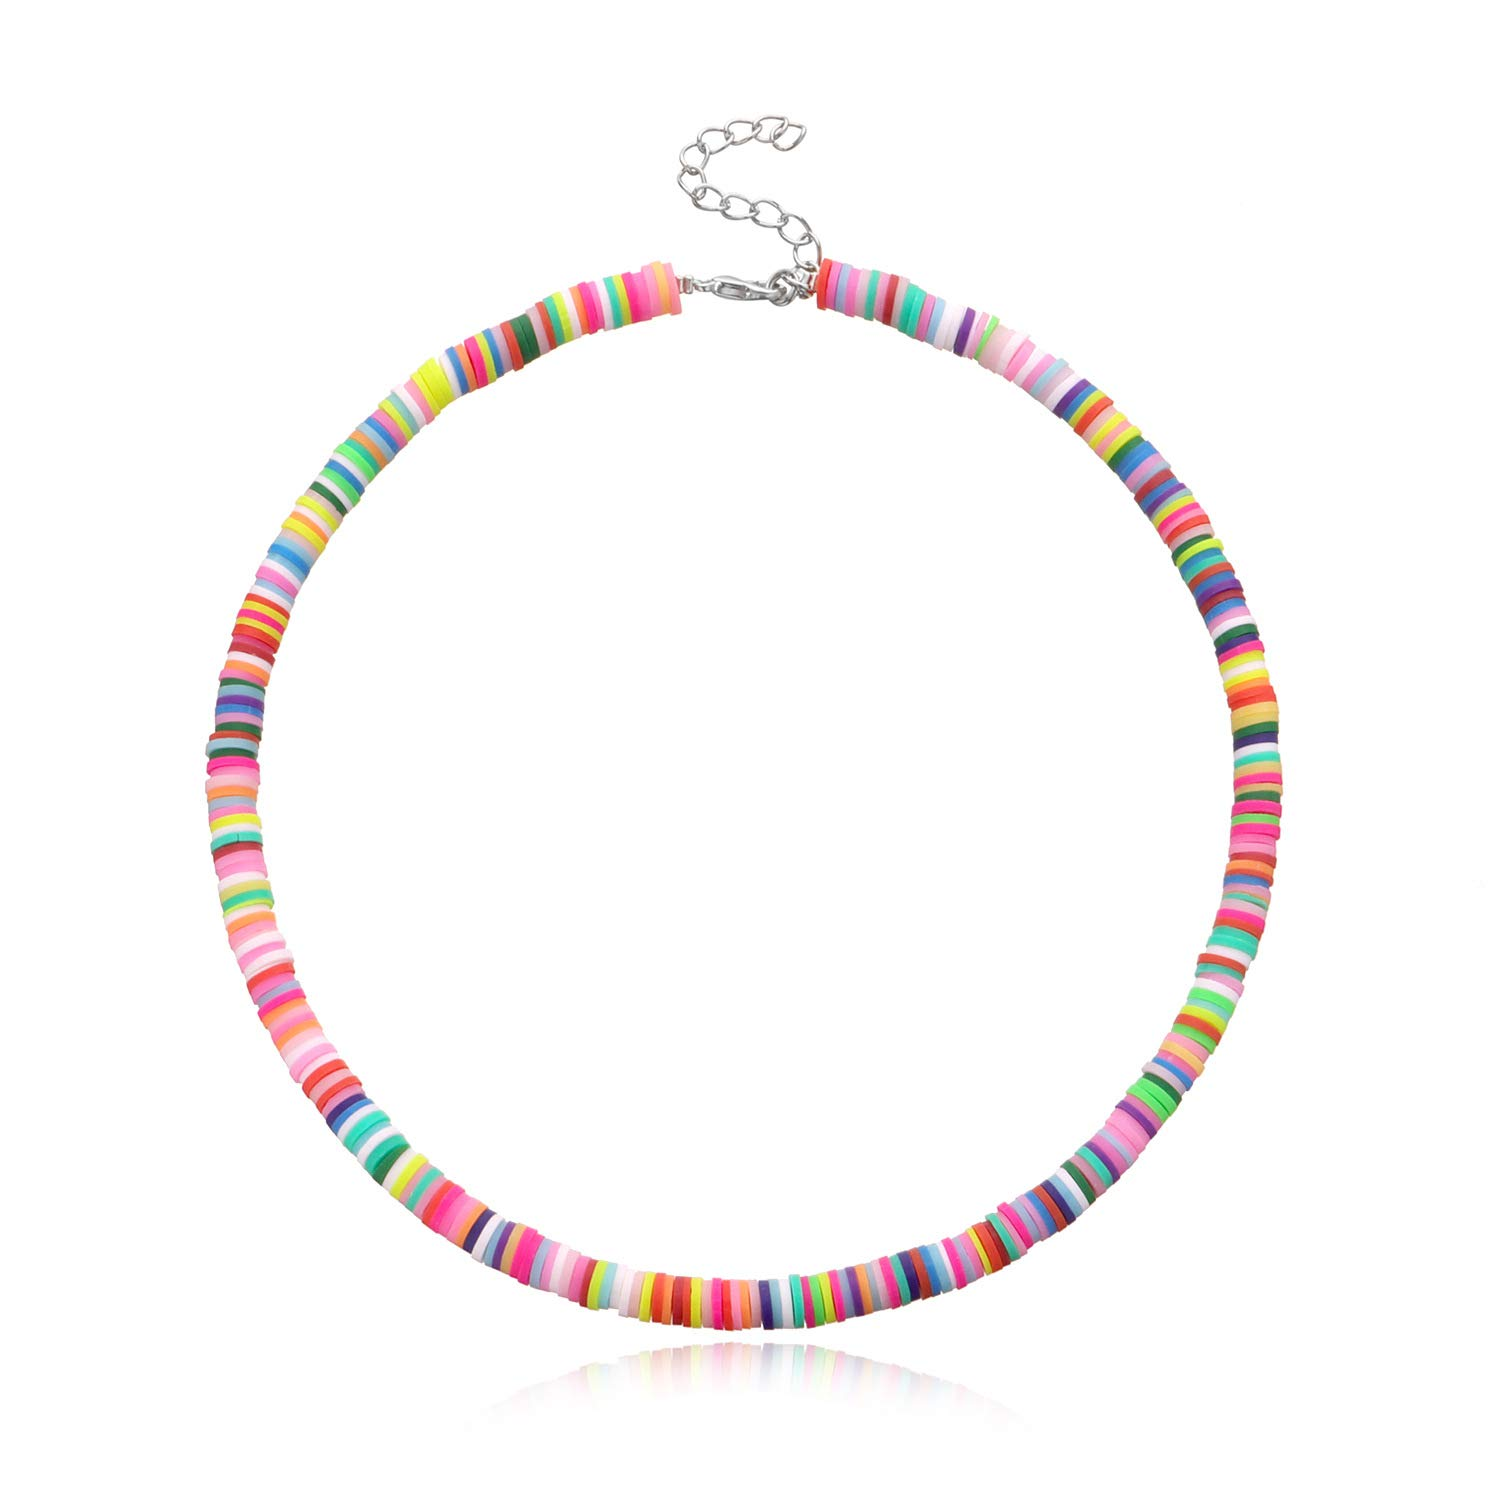 Yalice Boho Surfer Choker Necklace Hawaiian Necklaces Chain Heishi Bead Necklace Jewelry for Women and Girls (Colorful)